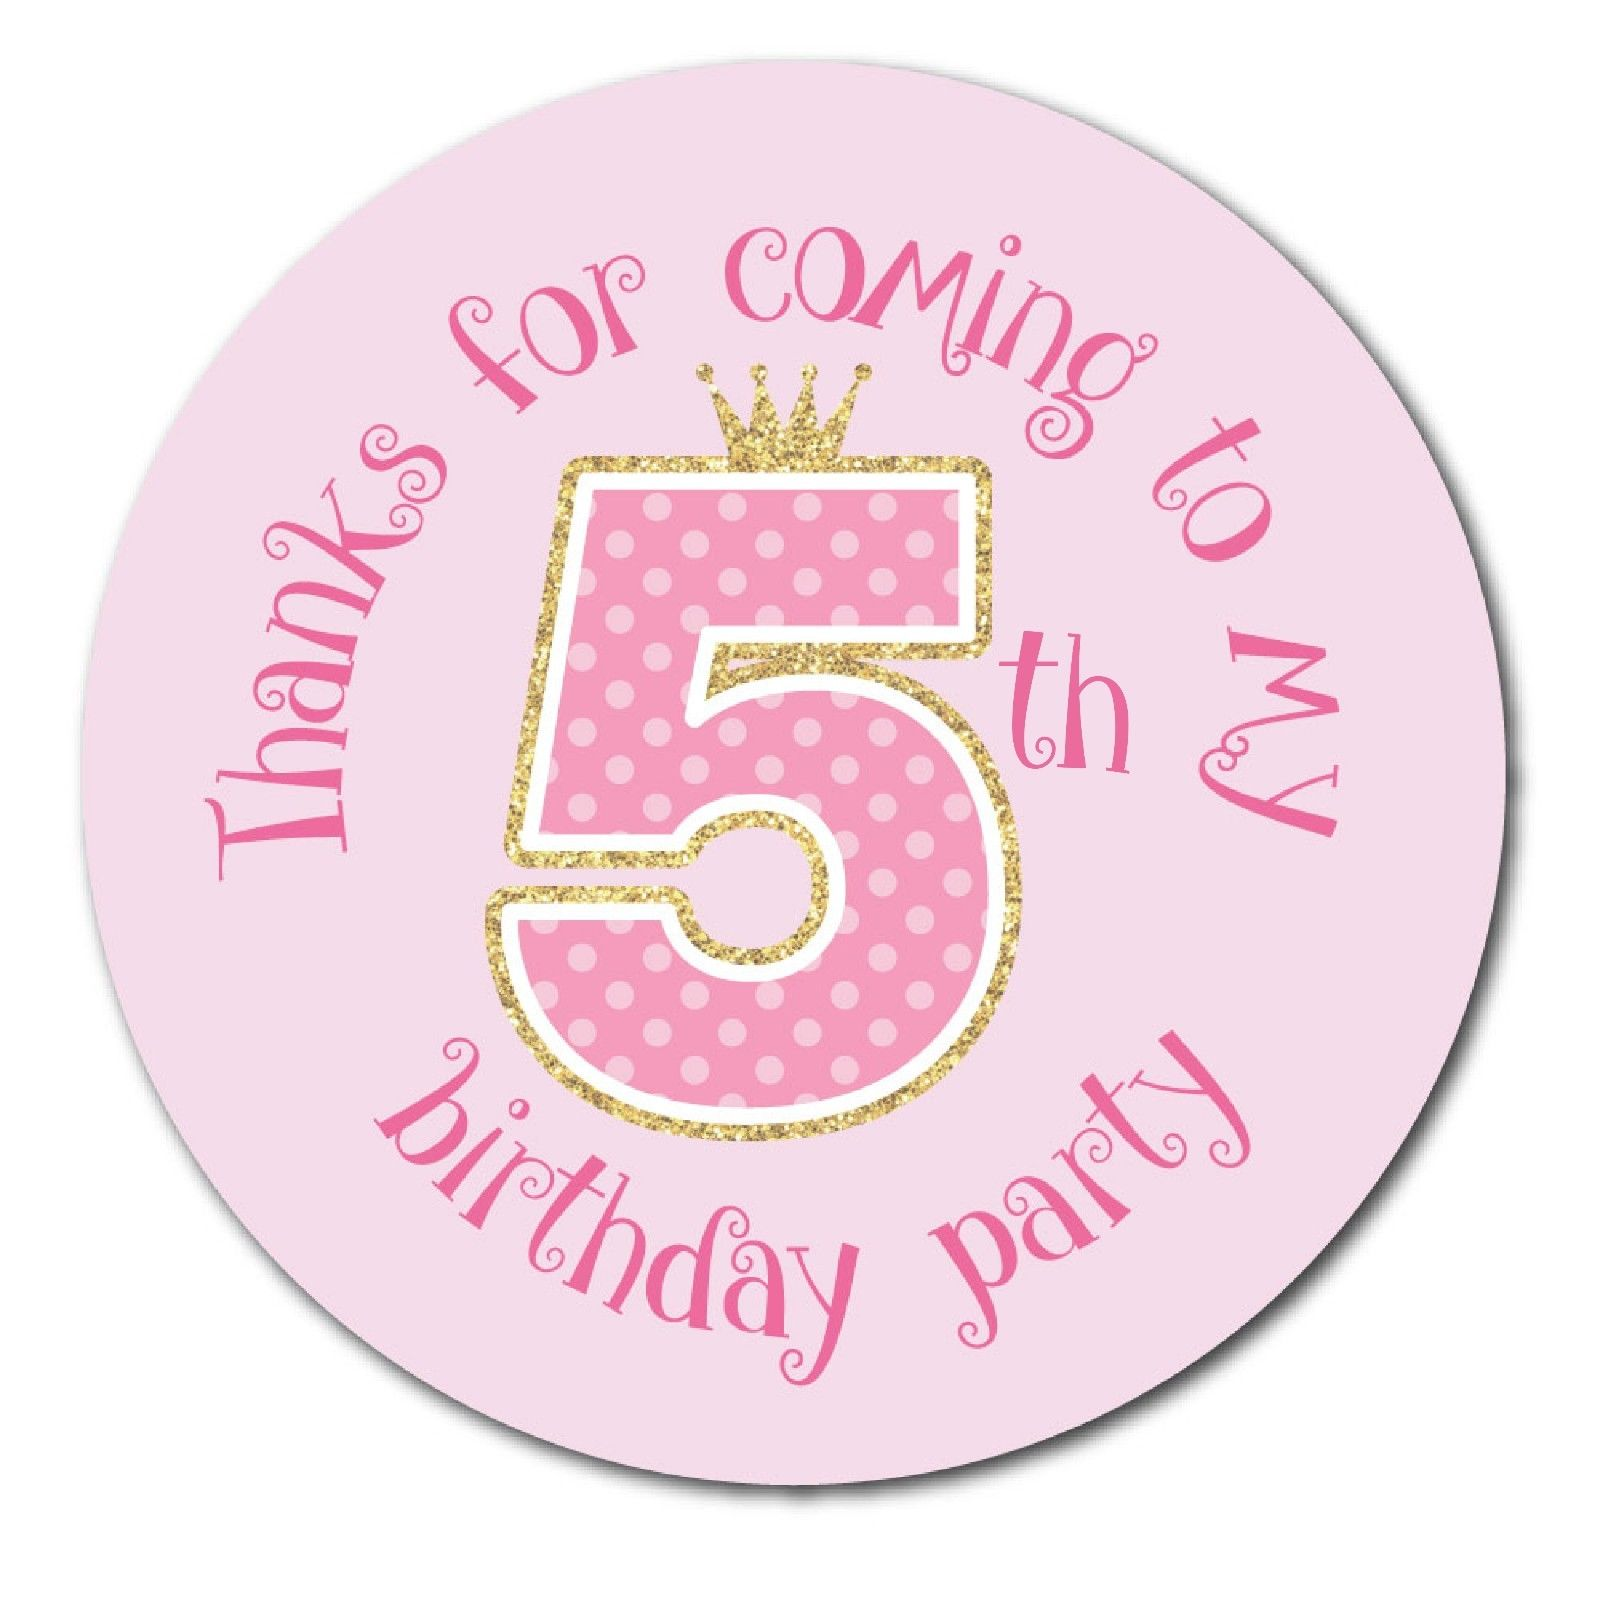 5th birthday stickers ; Thanks-For-Coming-To-My-5th-Birthday-Party-Pink-Polka-dot-30mm-stickers-201921475860